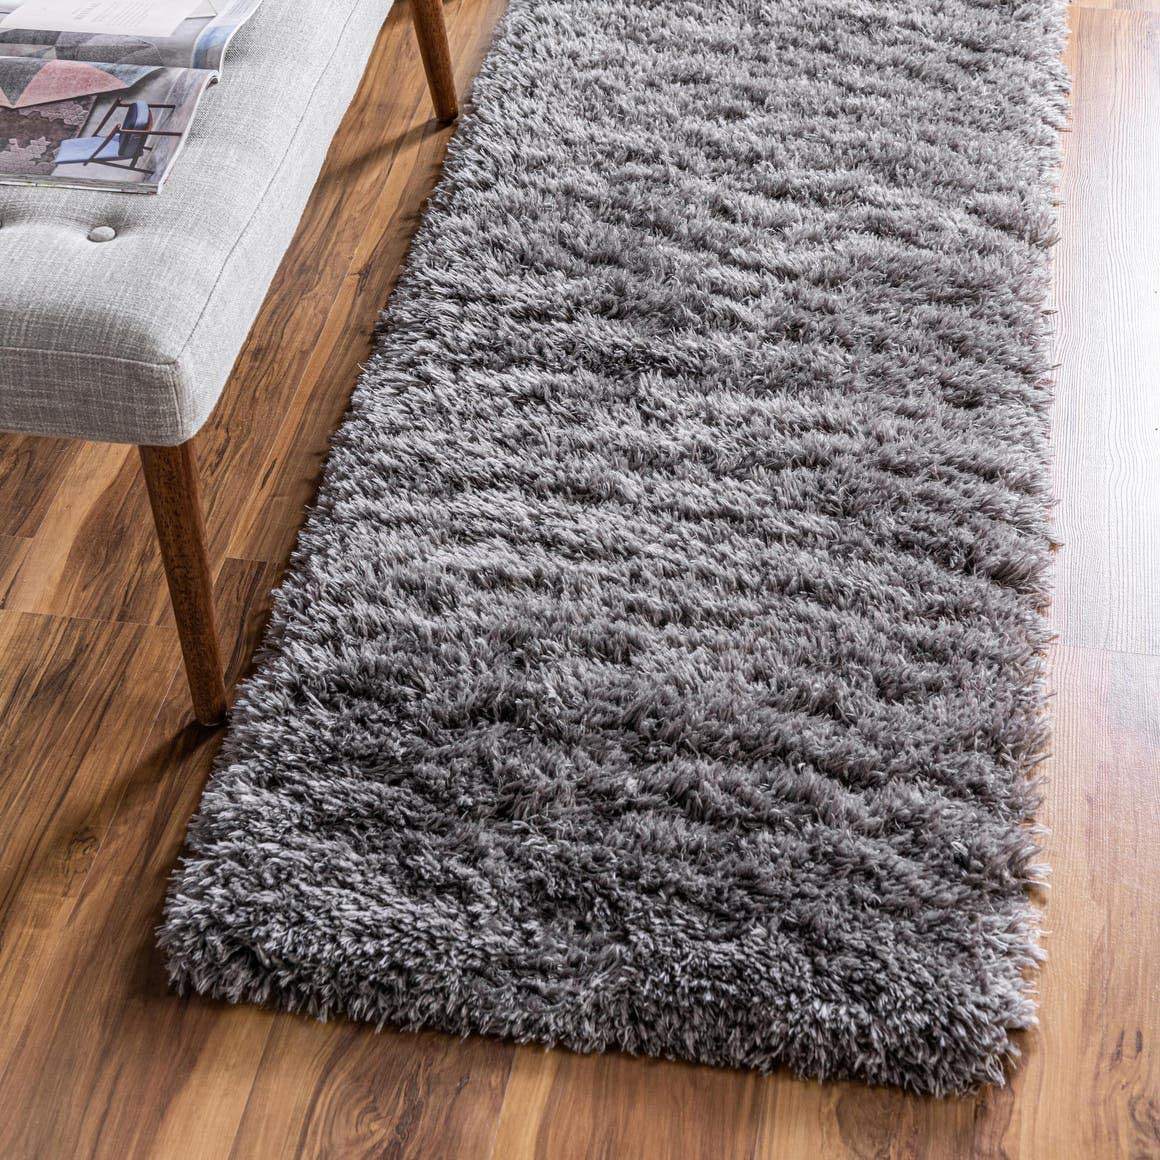 Sale Rugs.com Baltimore Mall Infinity Collection Solid Shag Area Ru Rug 13 Ft –